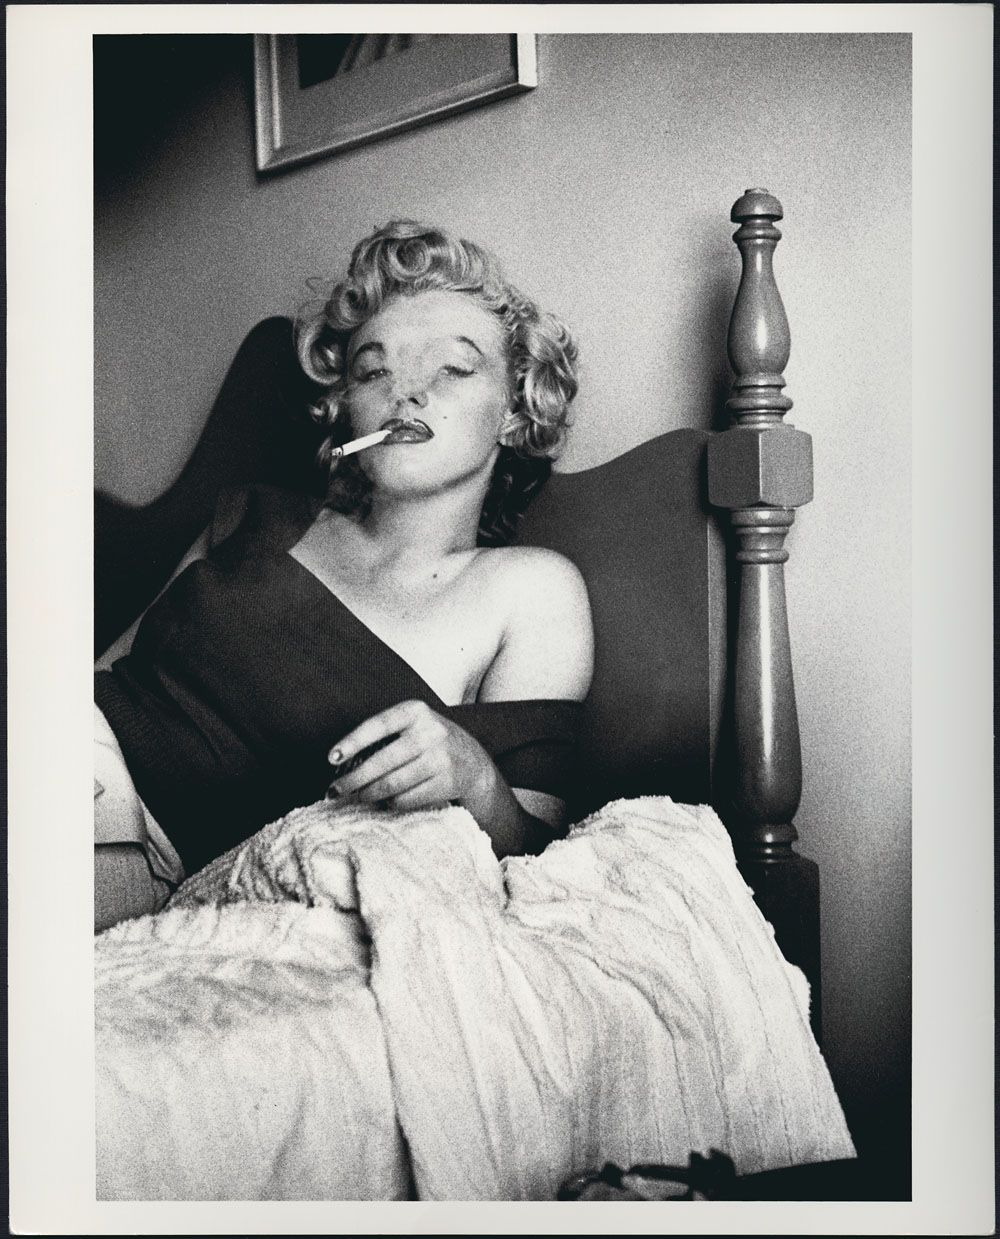 monroe smoking cigarette Marilyn